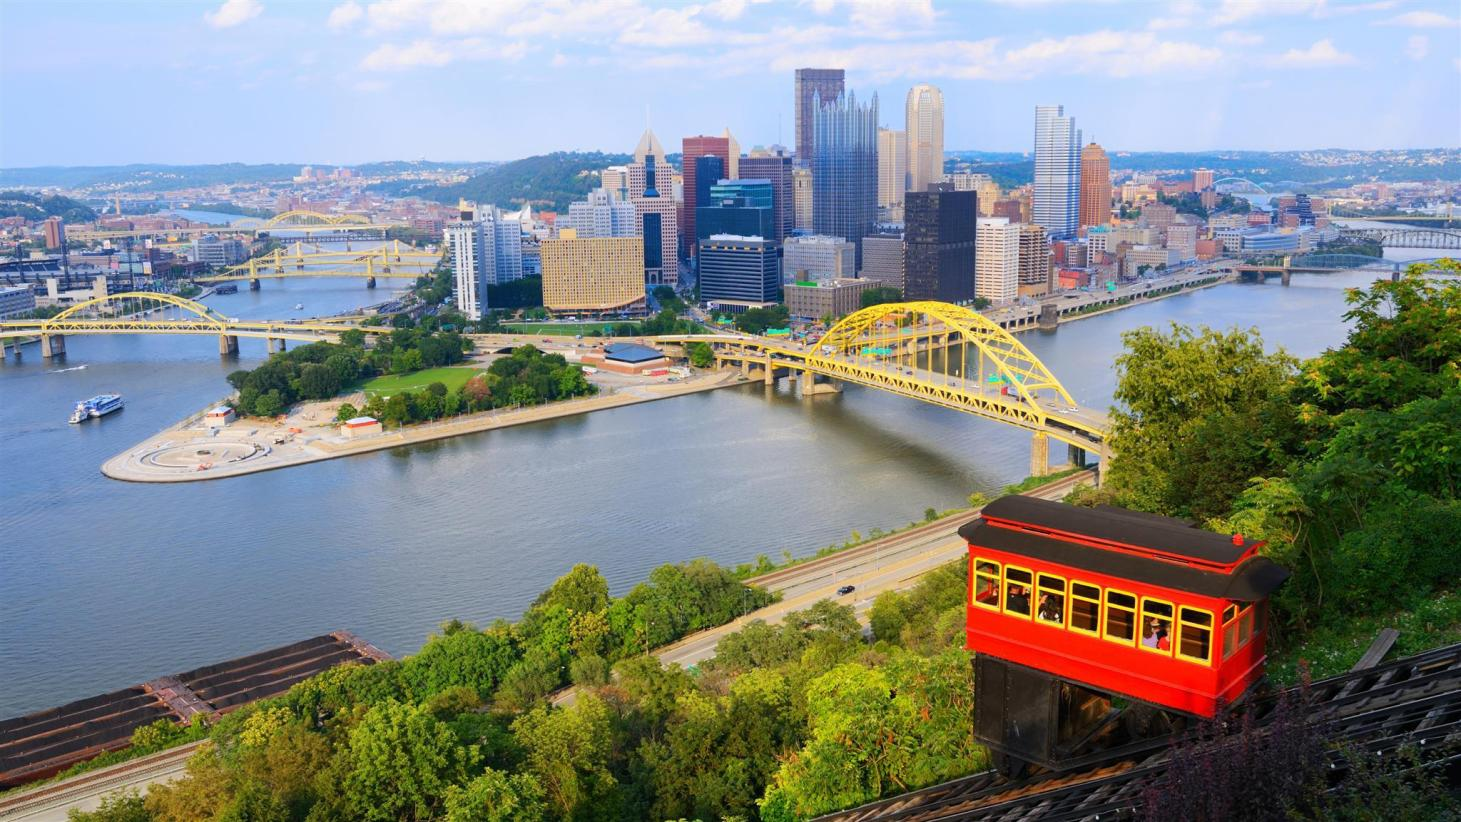 10 Best Pittsburgh (PA) Hotels: HD Photos + Reviews of